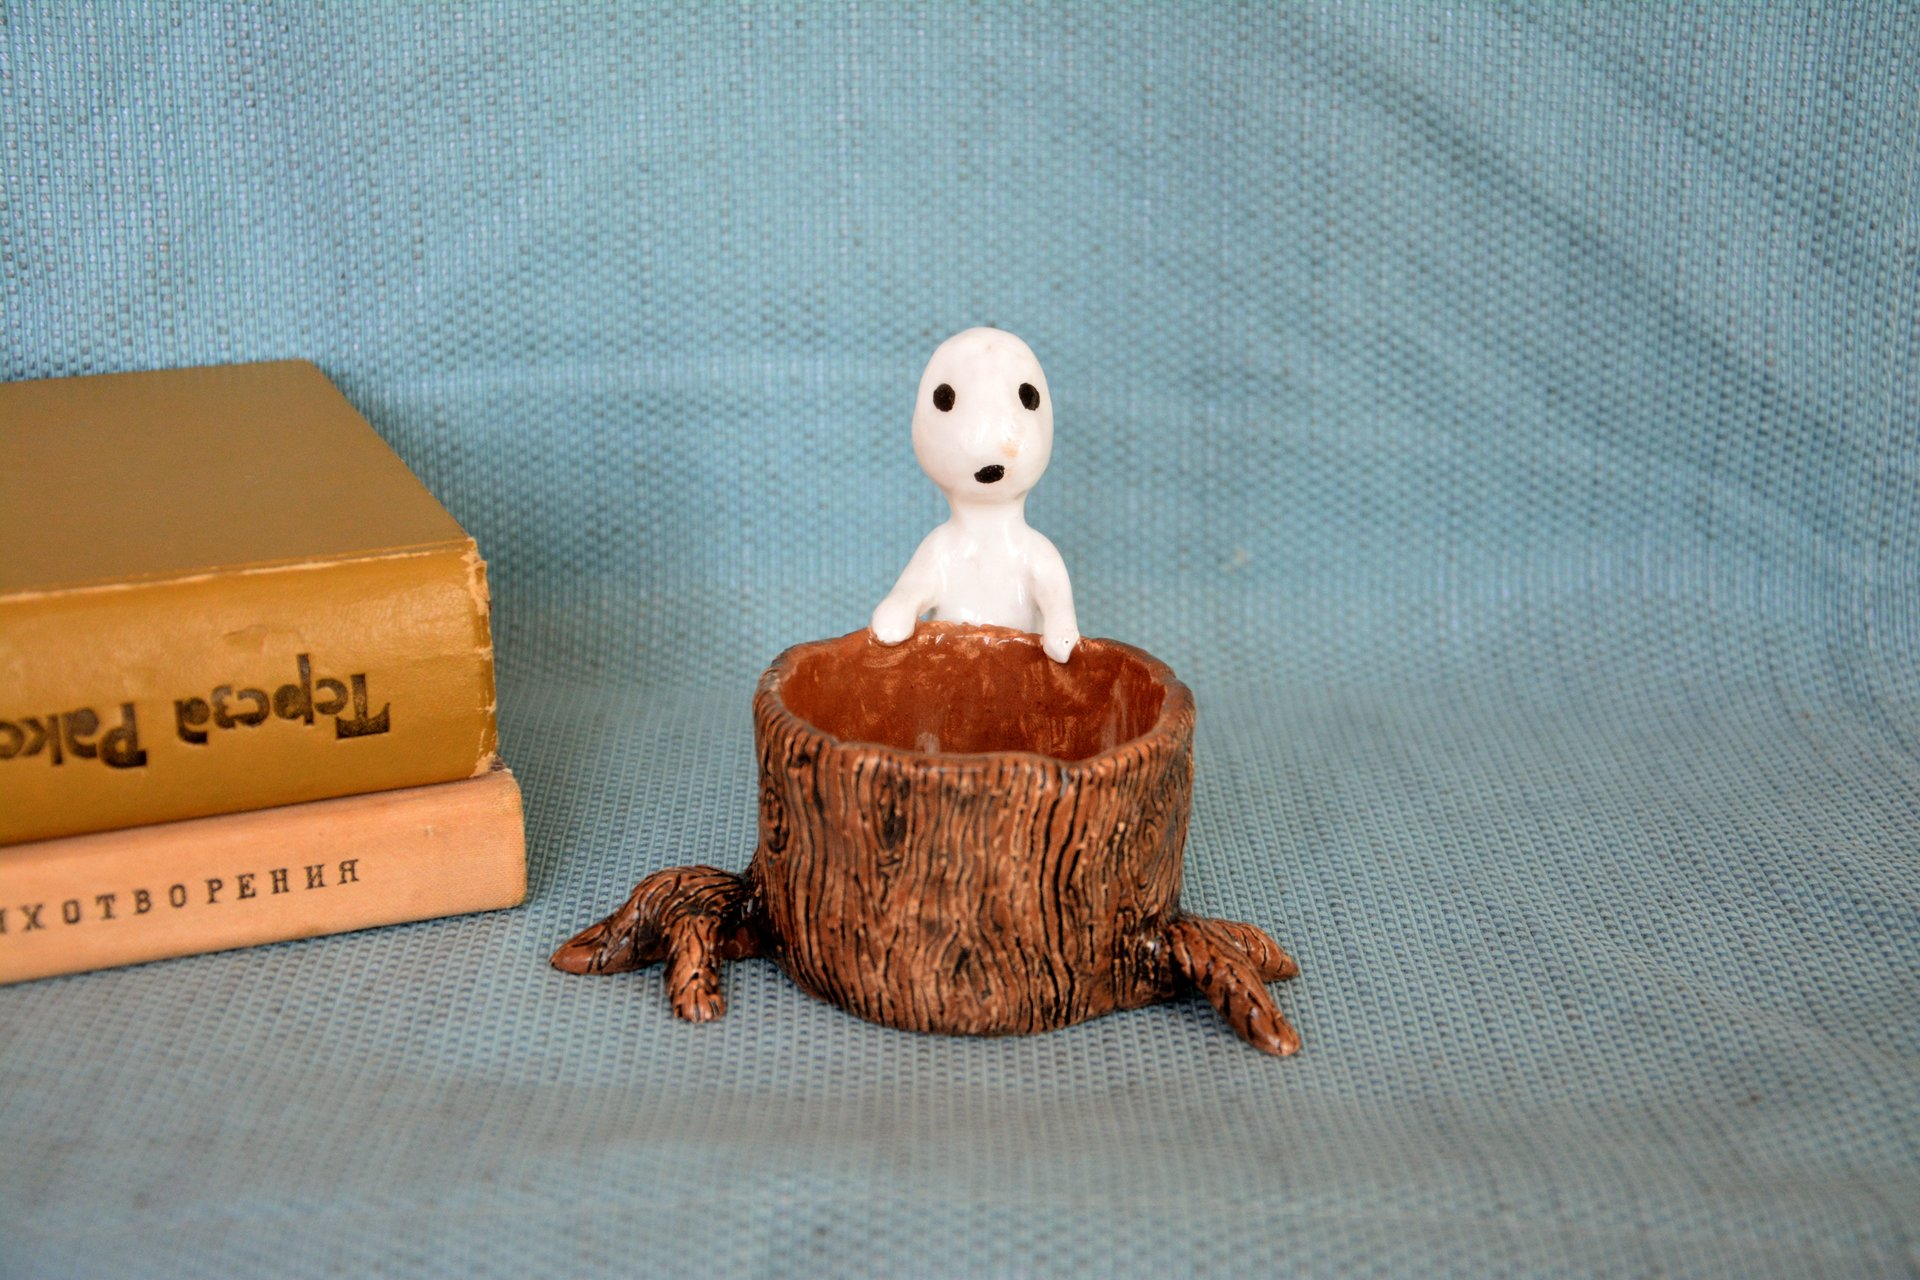 Kodama figurine tree spirit behind the stump, height - 9 cm, diameter of the stump - 6 cm, photo 8 of 8.